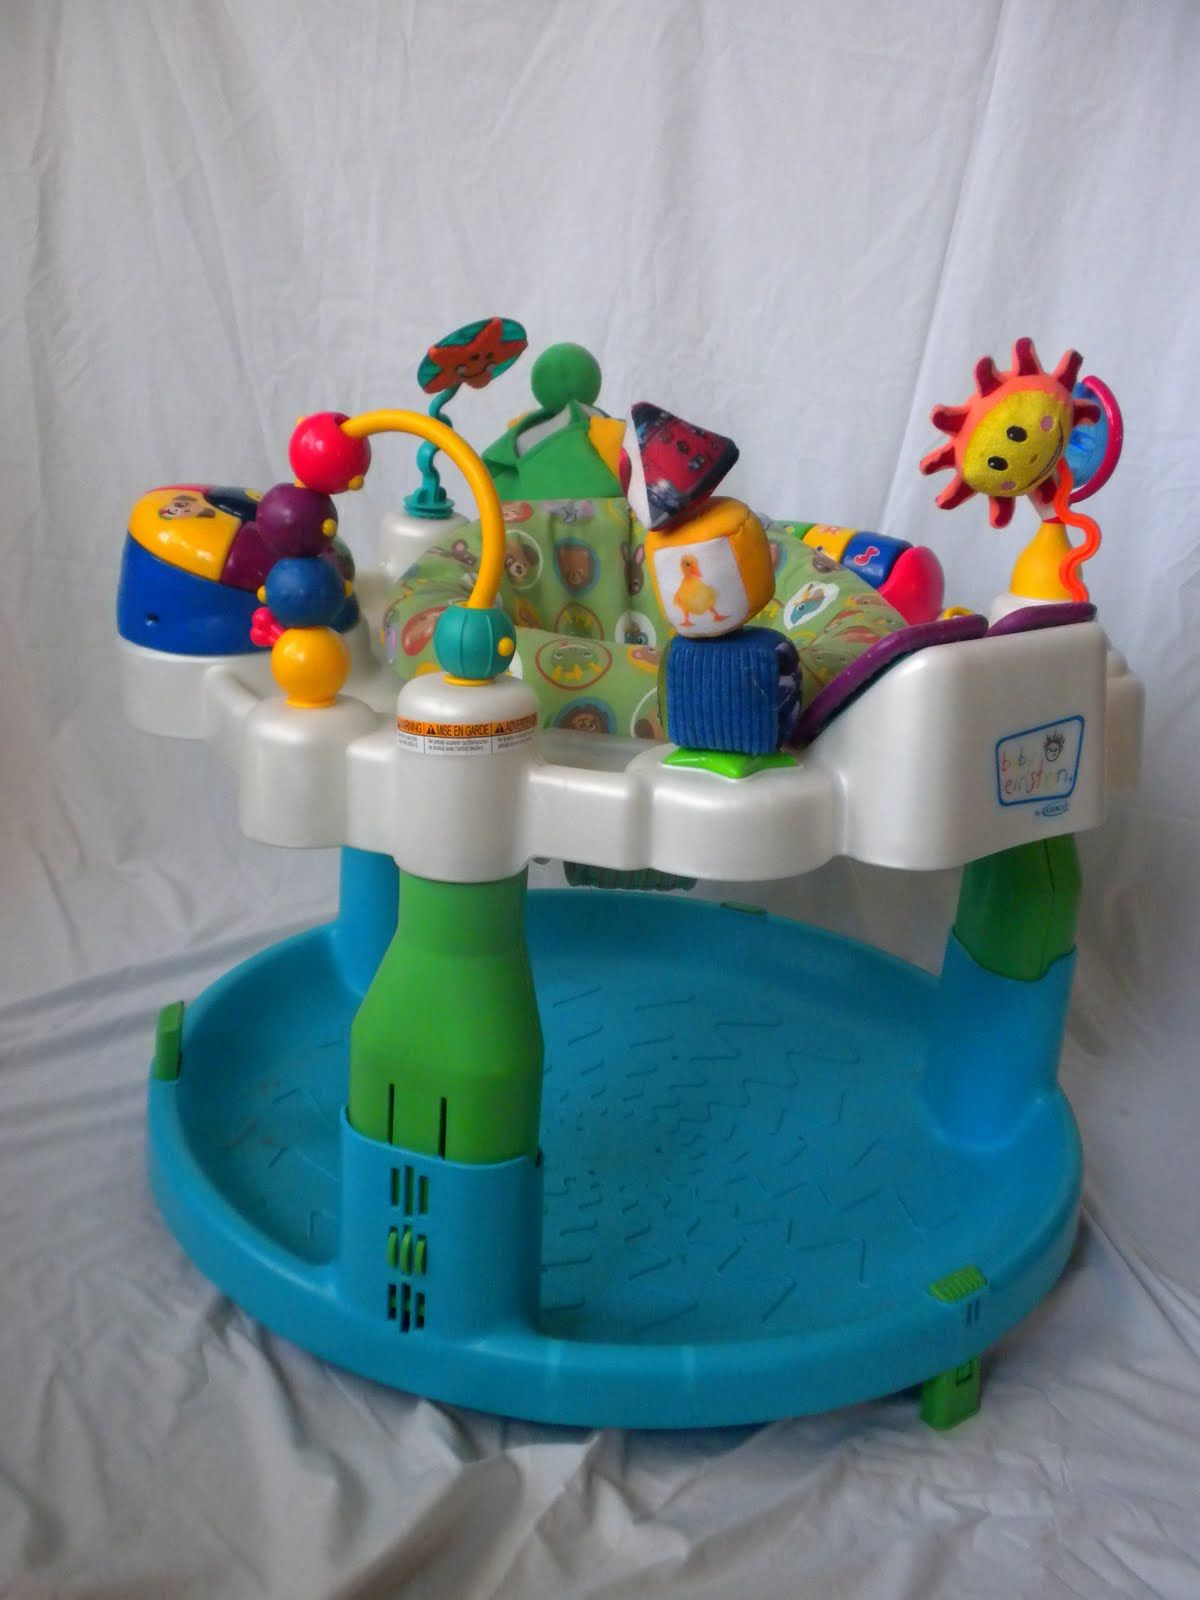 Baby Einstein Exersaucer Discovery Center Bought from Toys R US